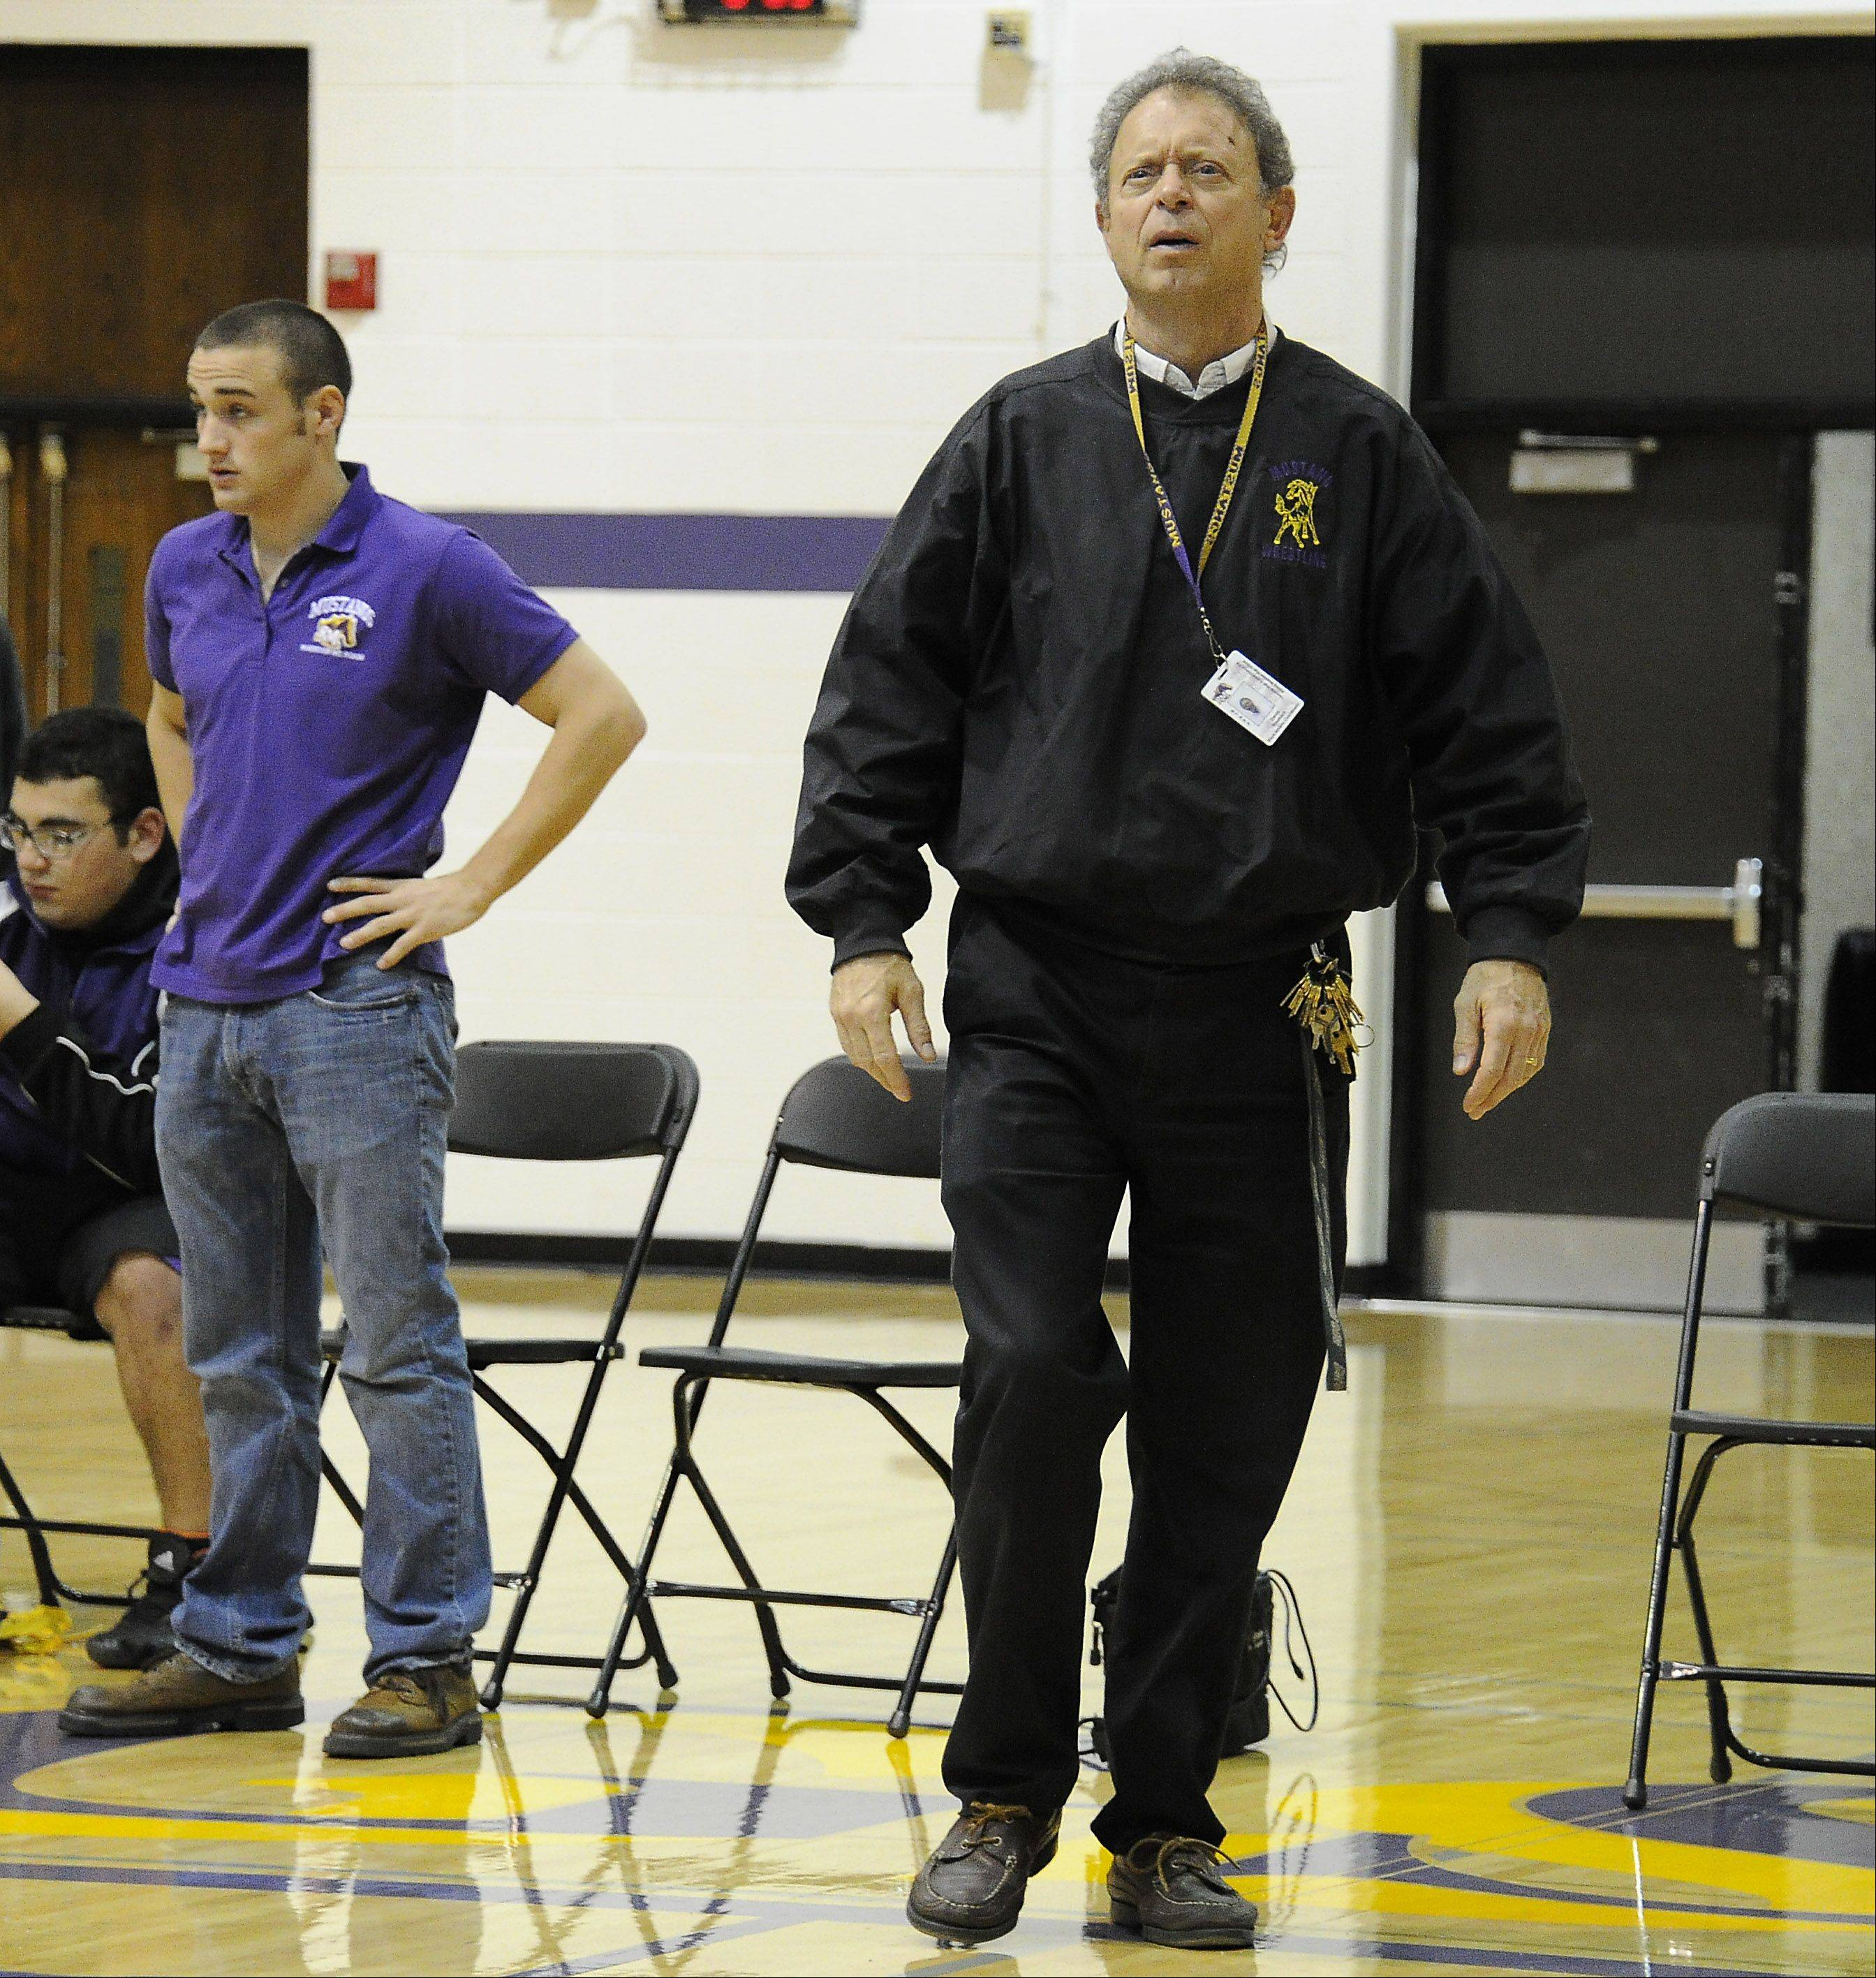 Dave Froelich is in his 35th season of coaching Rolling Meadows wrestling.